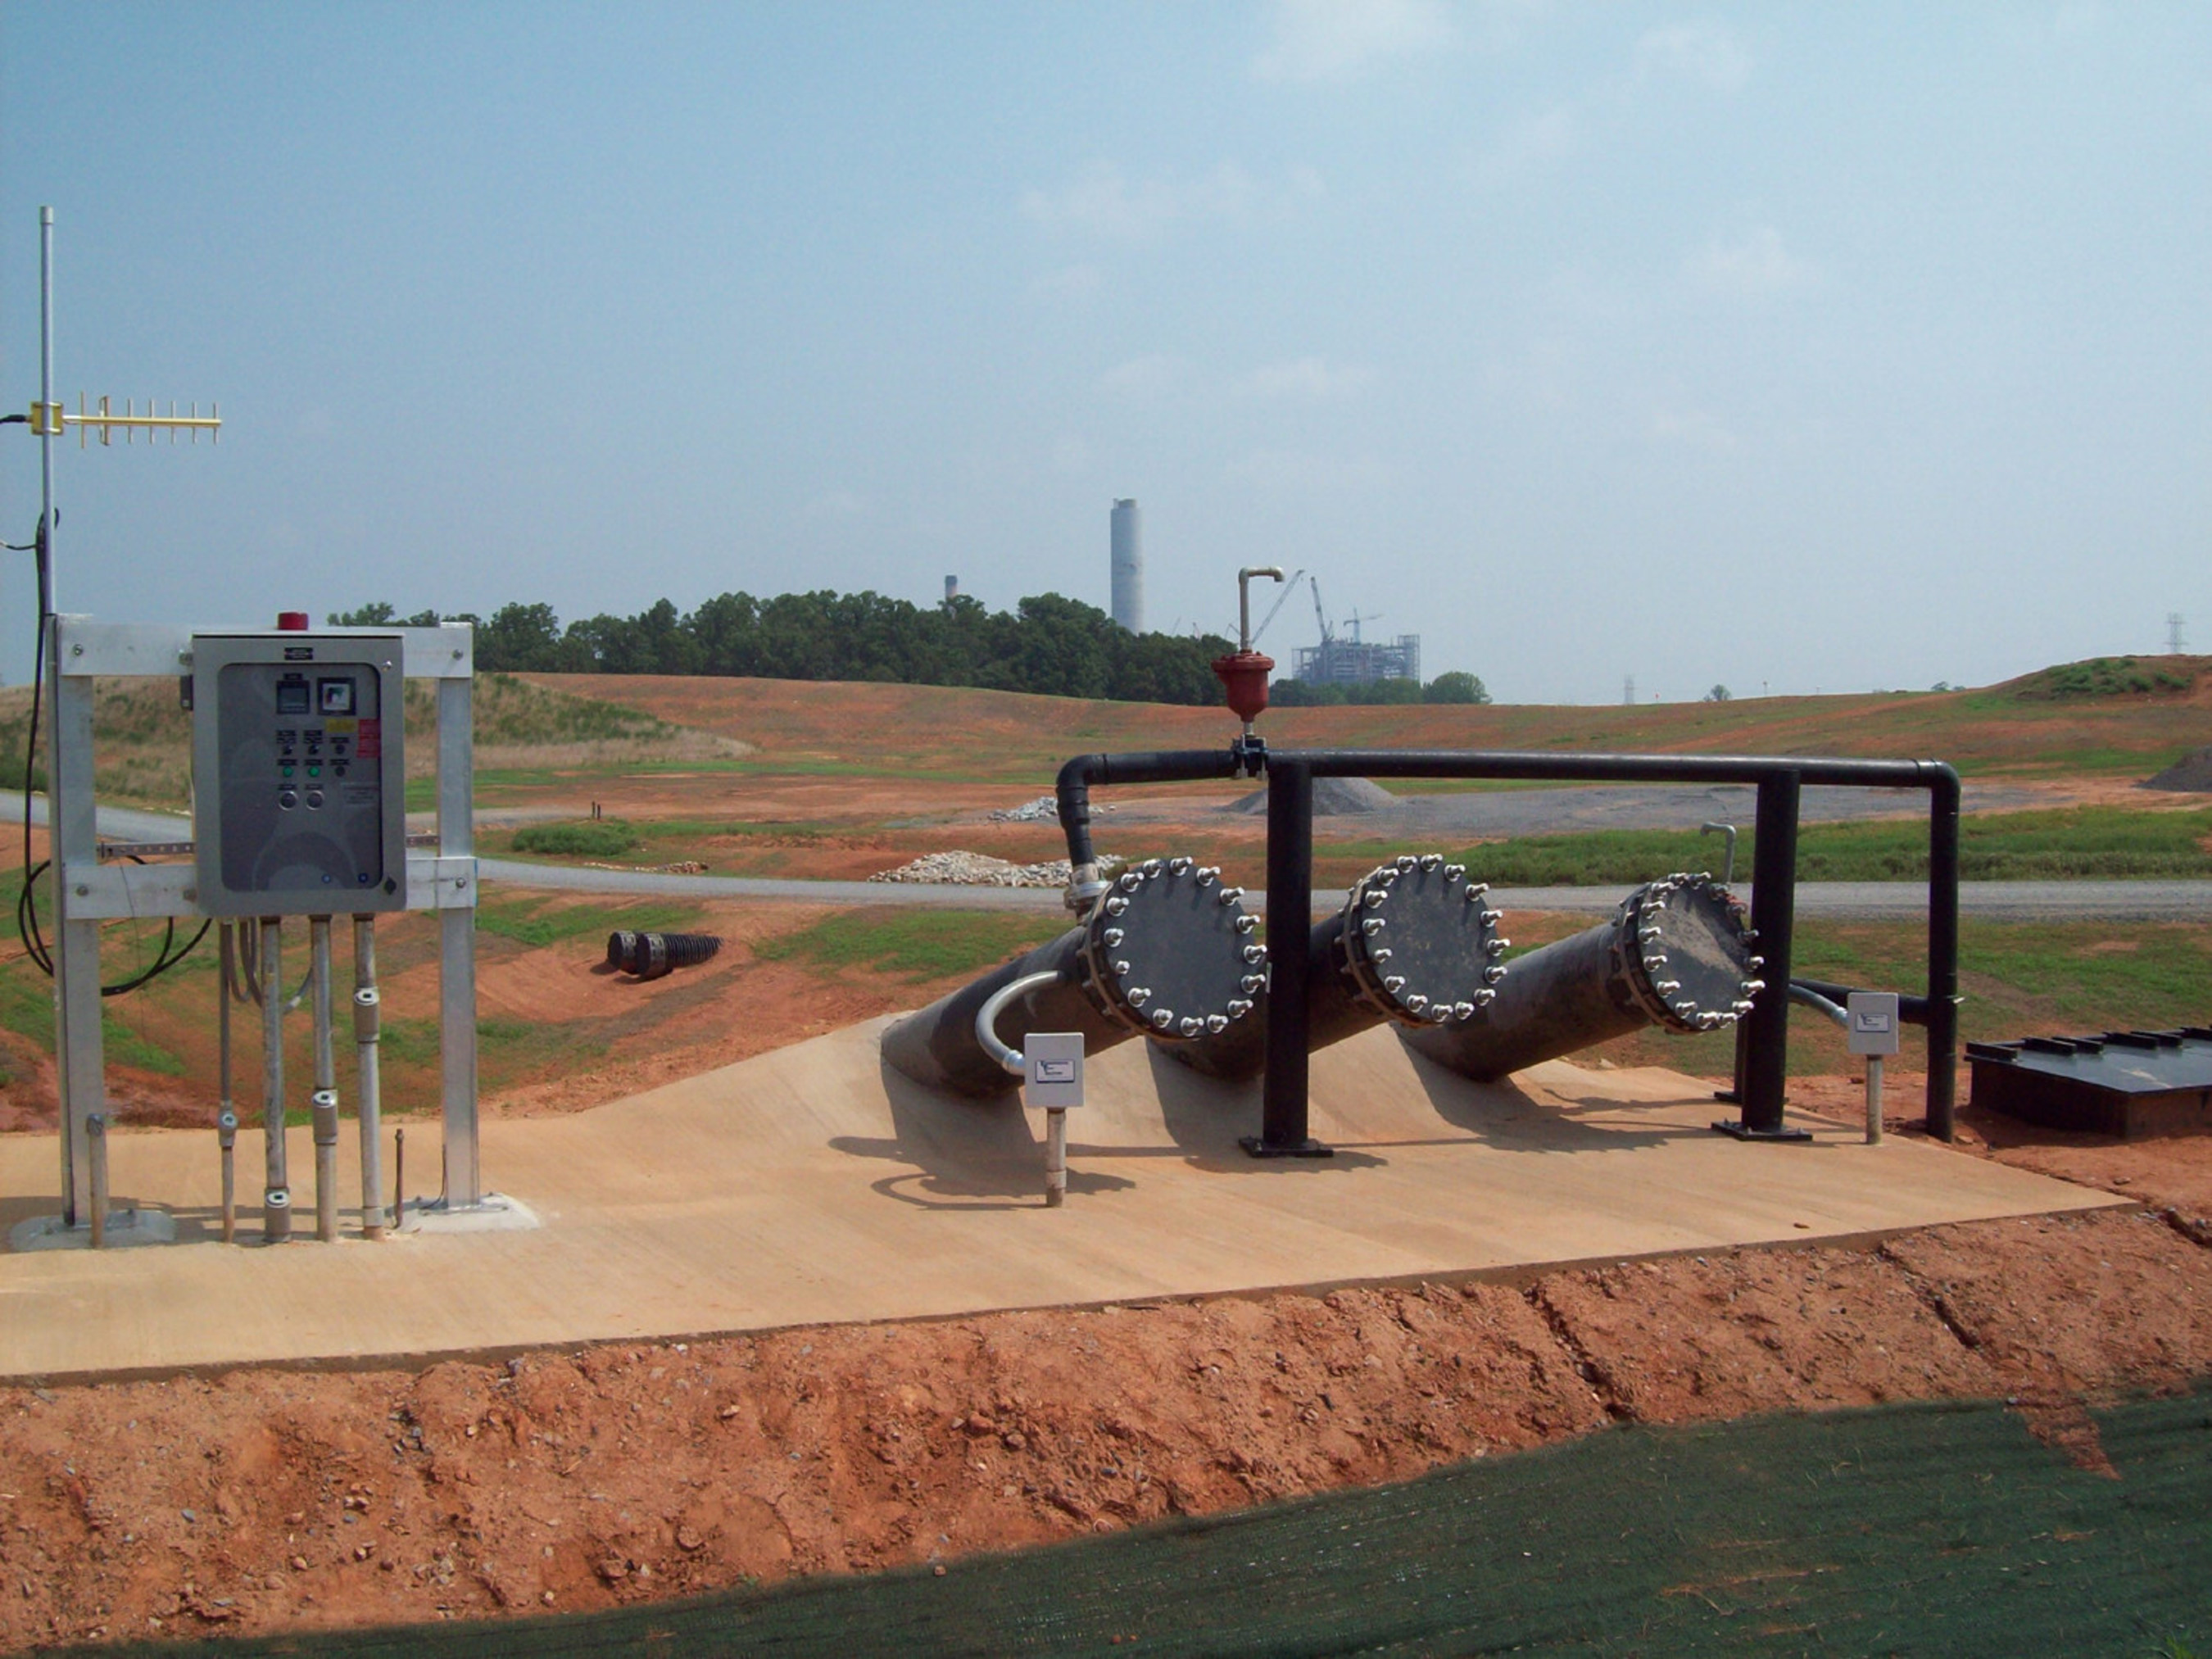 A typical landfill sloperiser pump installation with programmable control panels